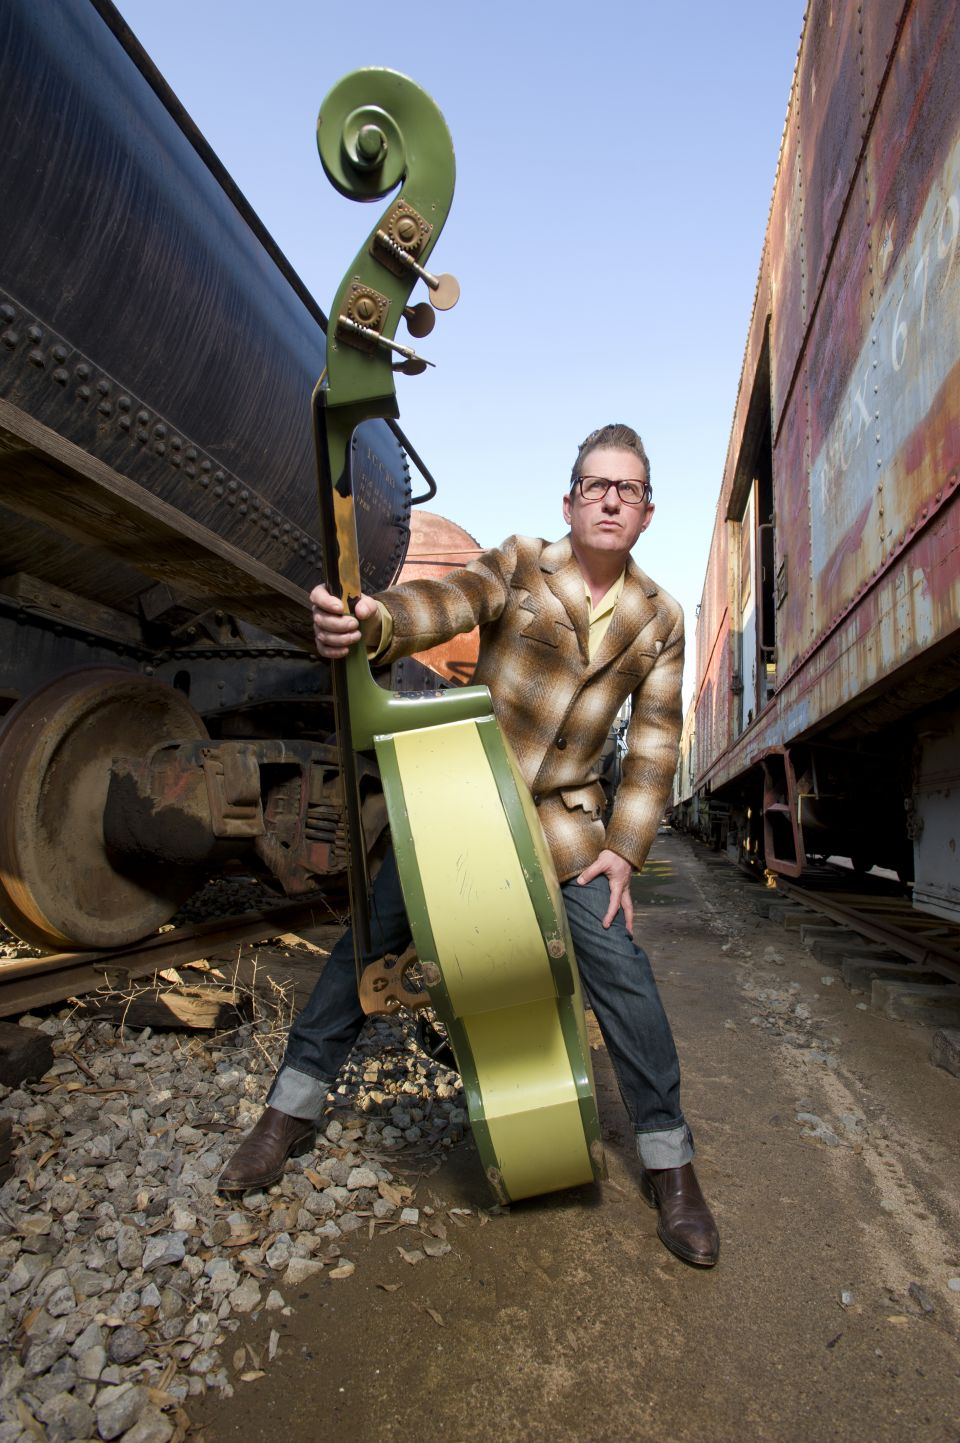 Lee Rocker in between two trains with his bass guitar.